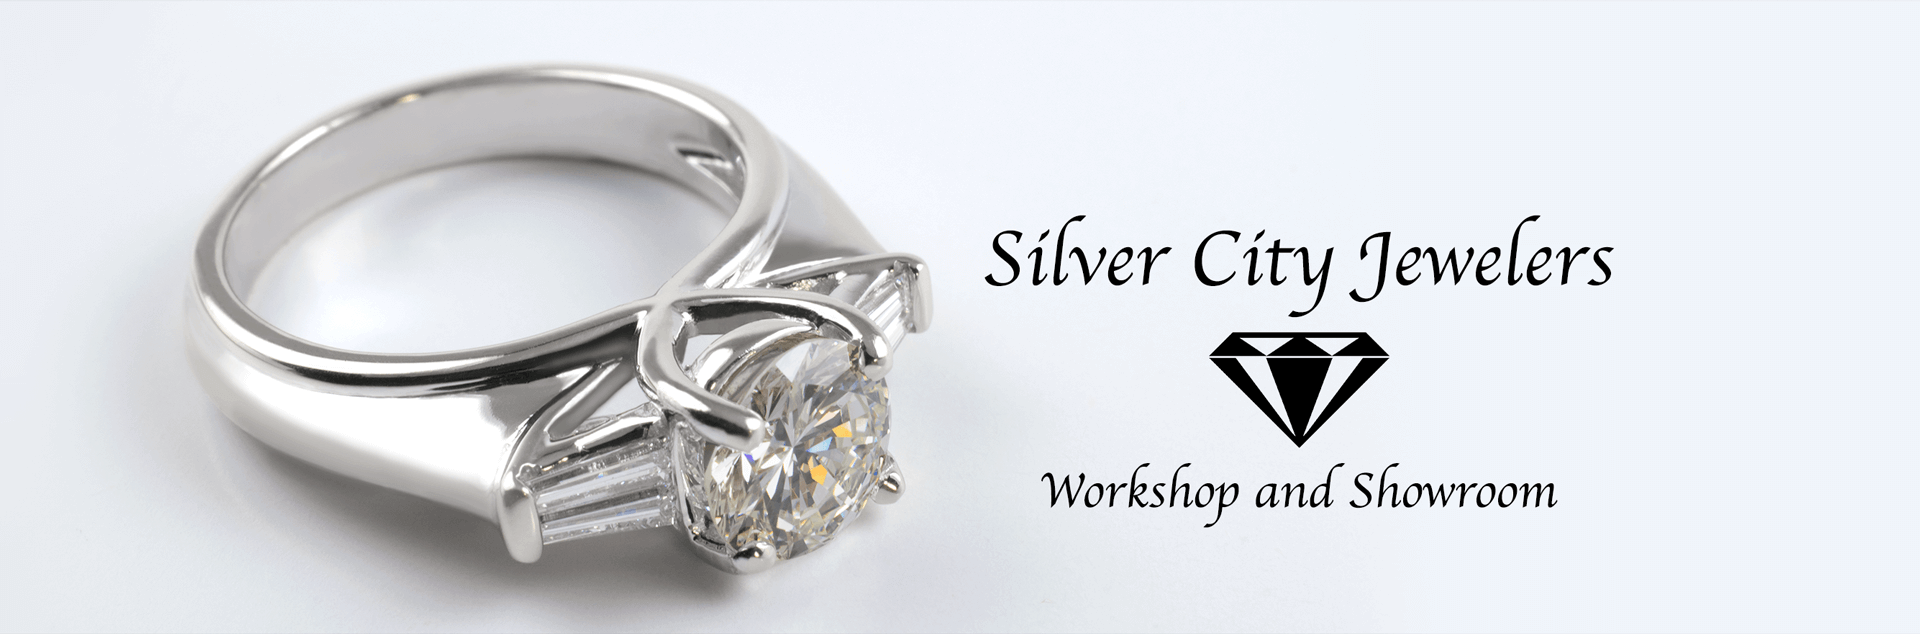 Silver City Jewelry Store In Ocala Fl 3205 E Silver Springs Blvd